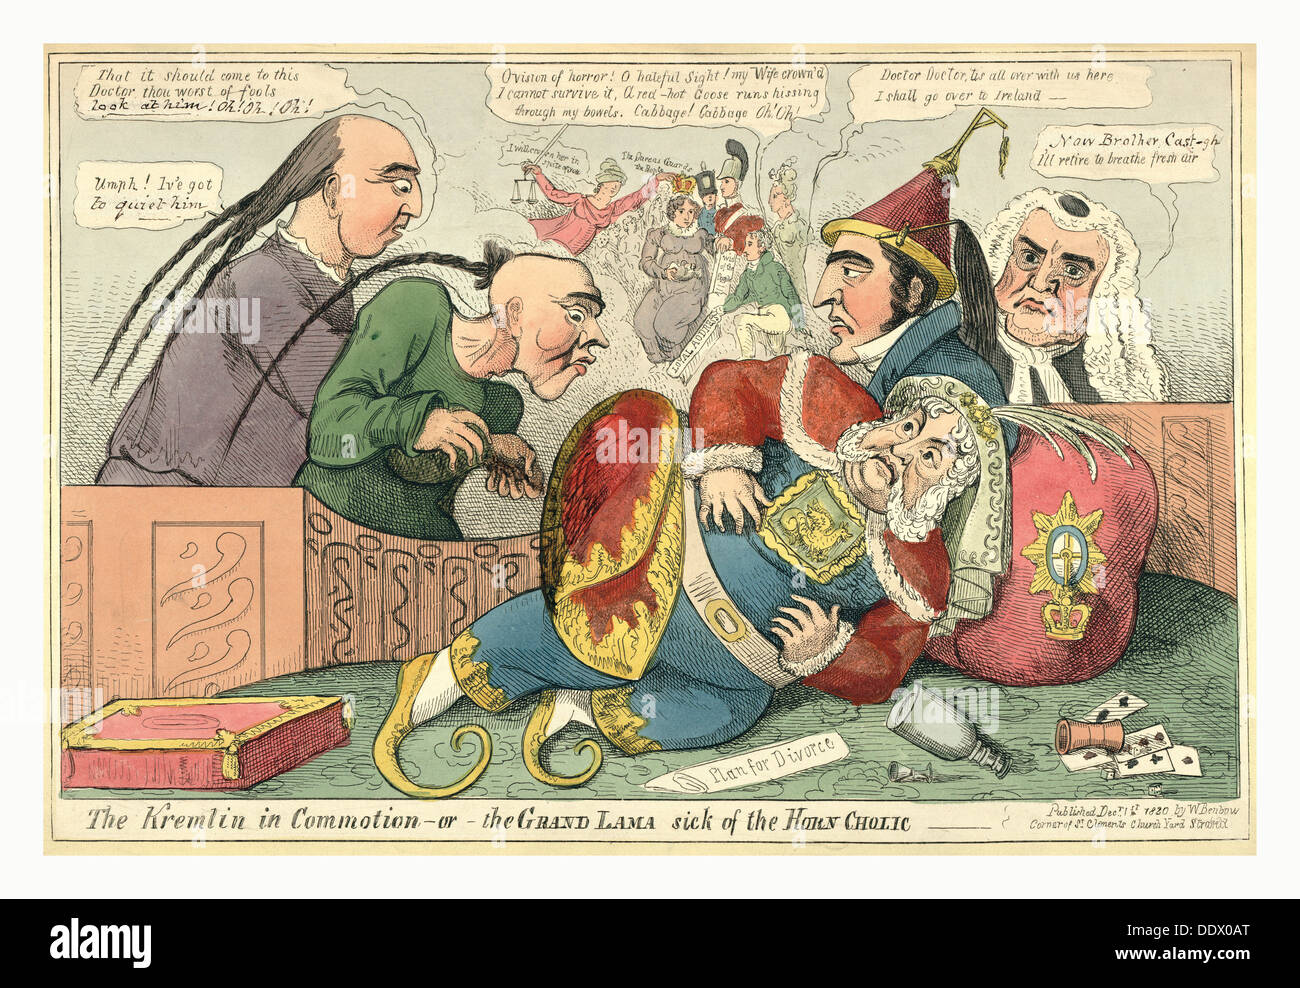 The Kremlin in commotion  or  the Grand Lama sick of the horn cholic, 1820, King George IV fallen to the floor - Stock Image